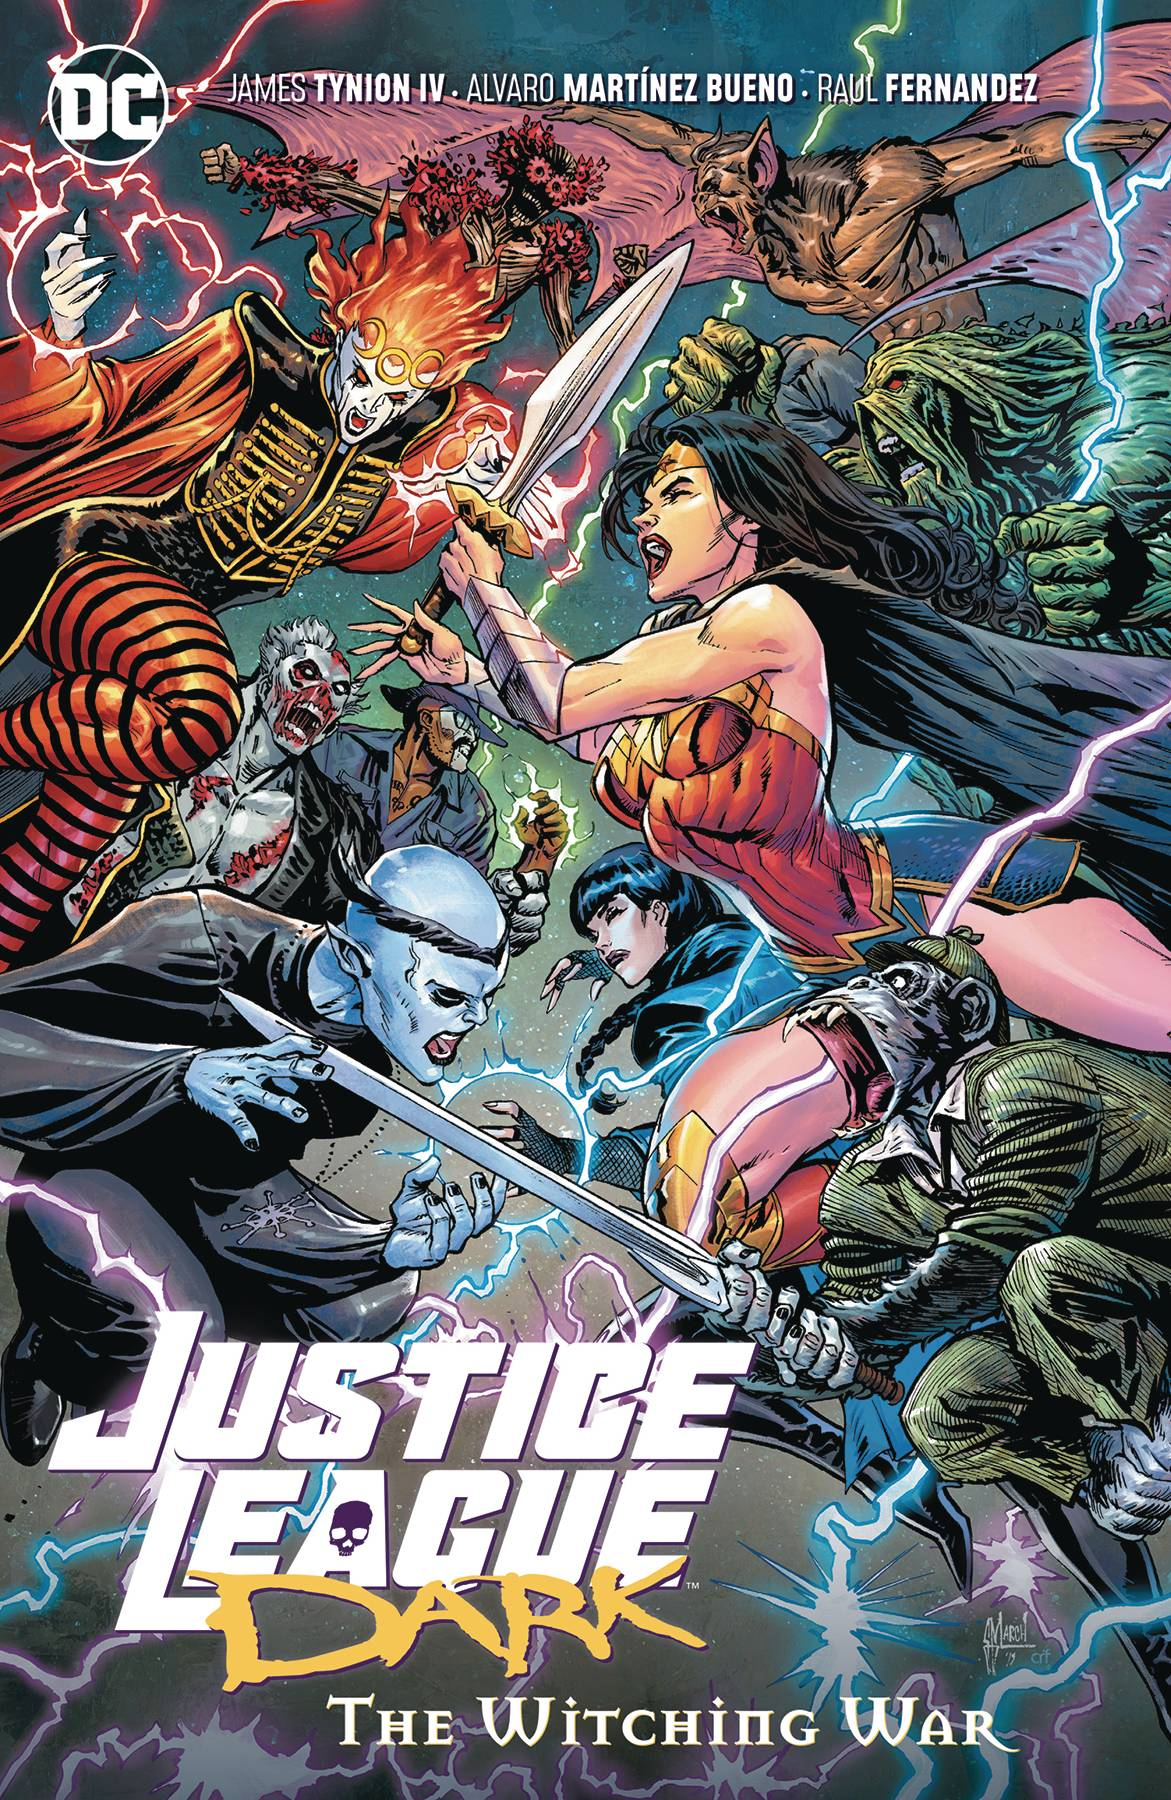 JUSTICE LEAGUE DARK TP VOL 03 THE WITCHING WAR